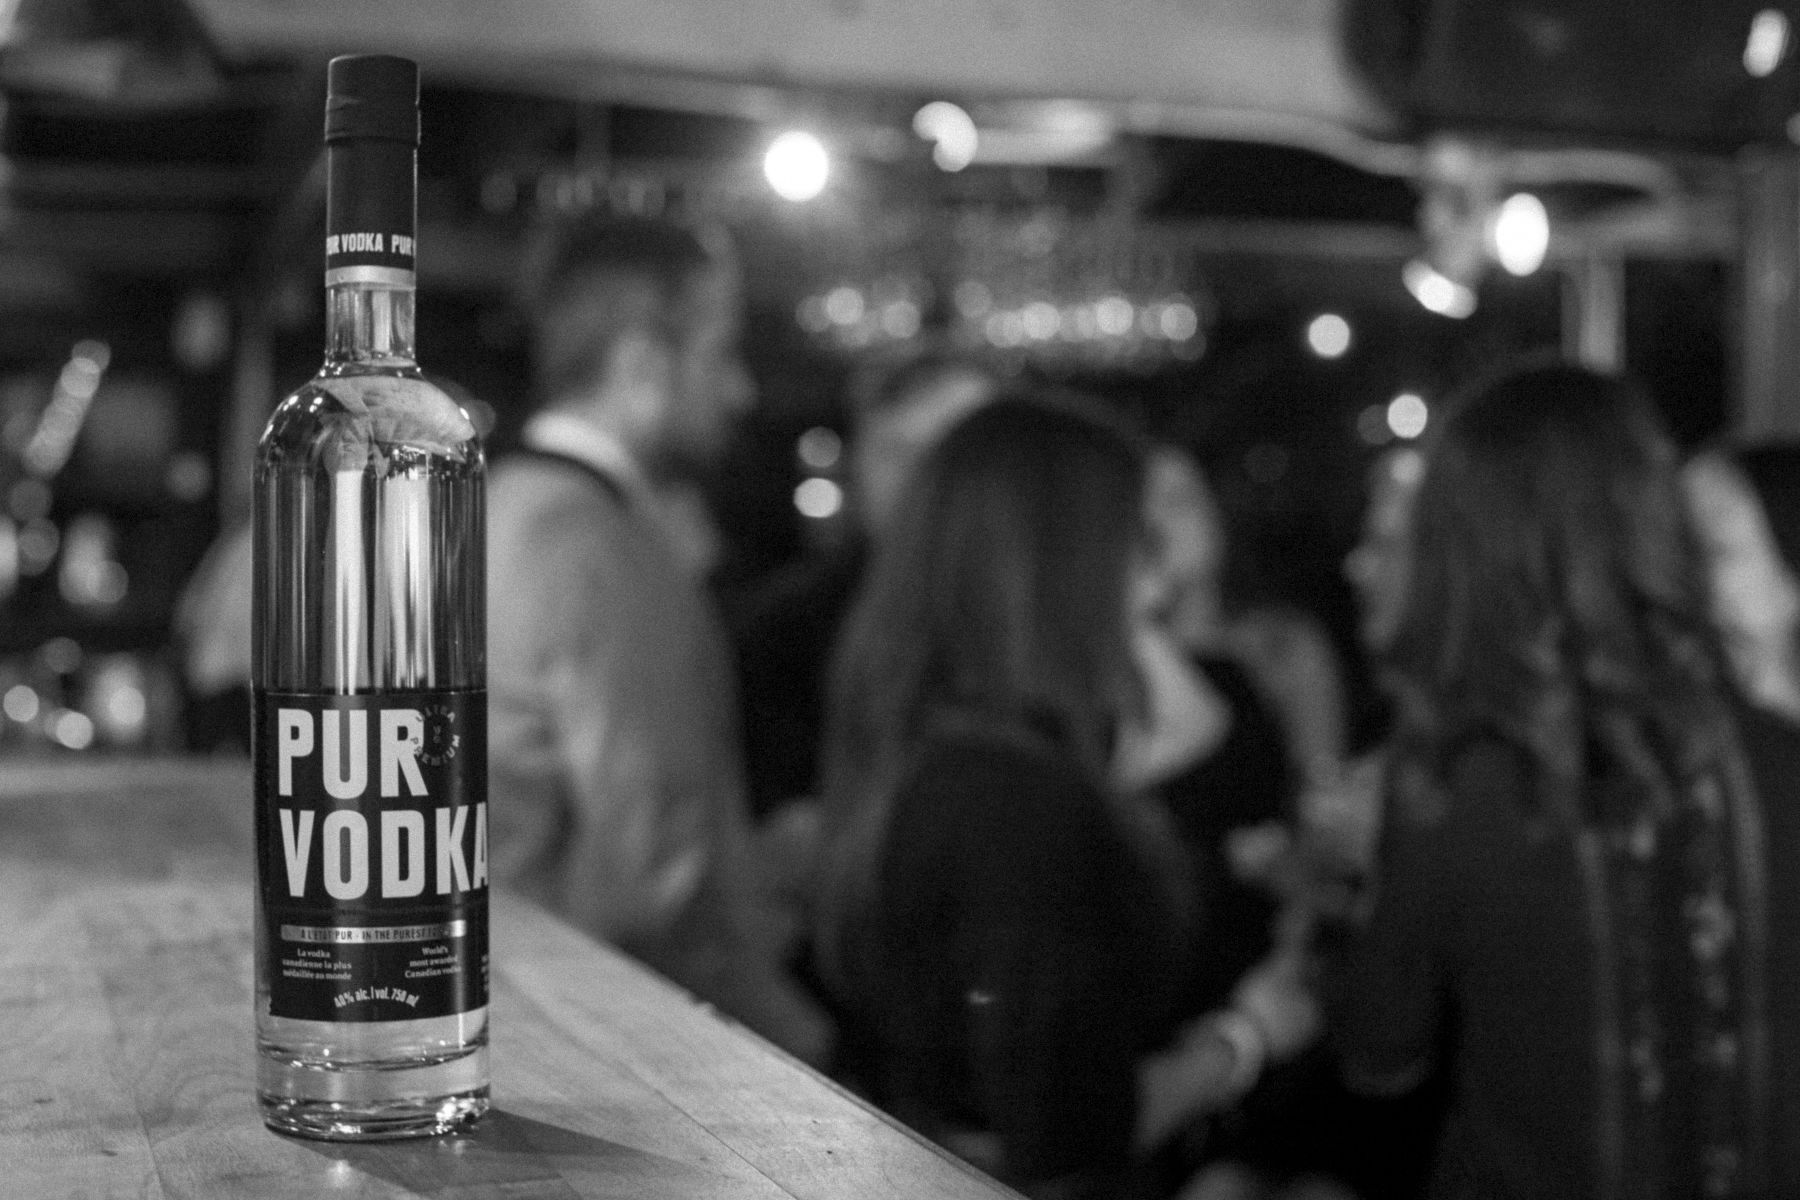 1pur_vodka29_oct_2017033_2